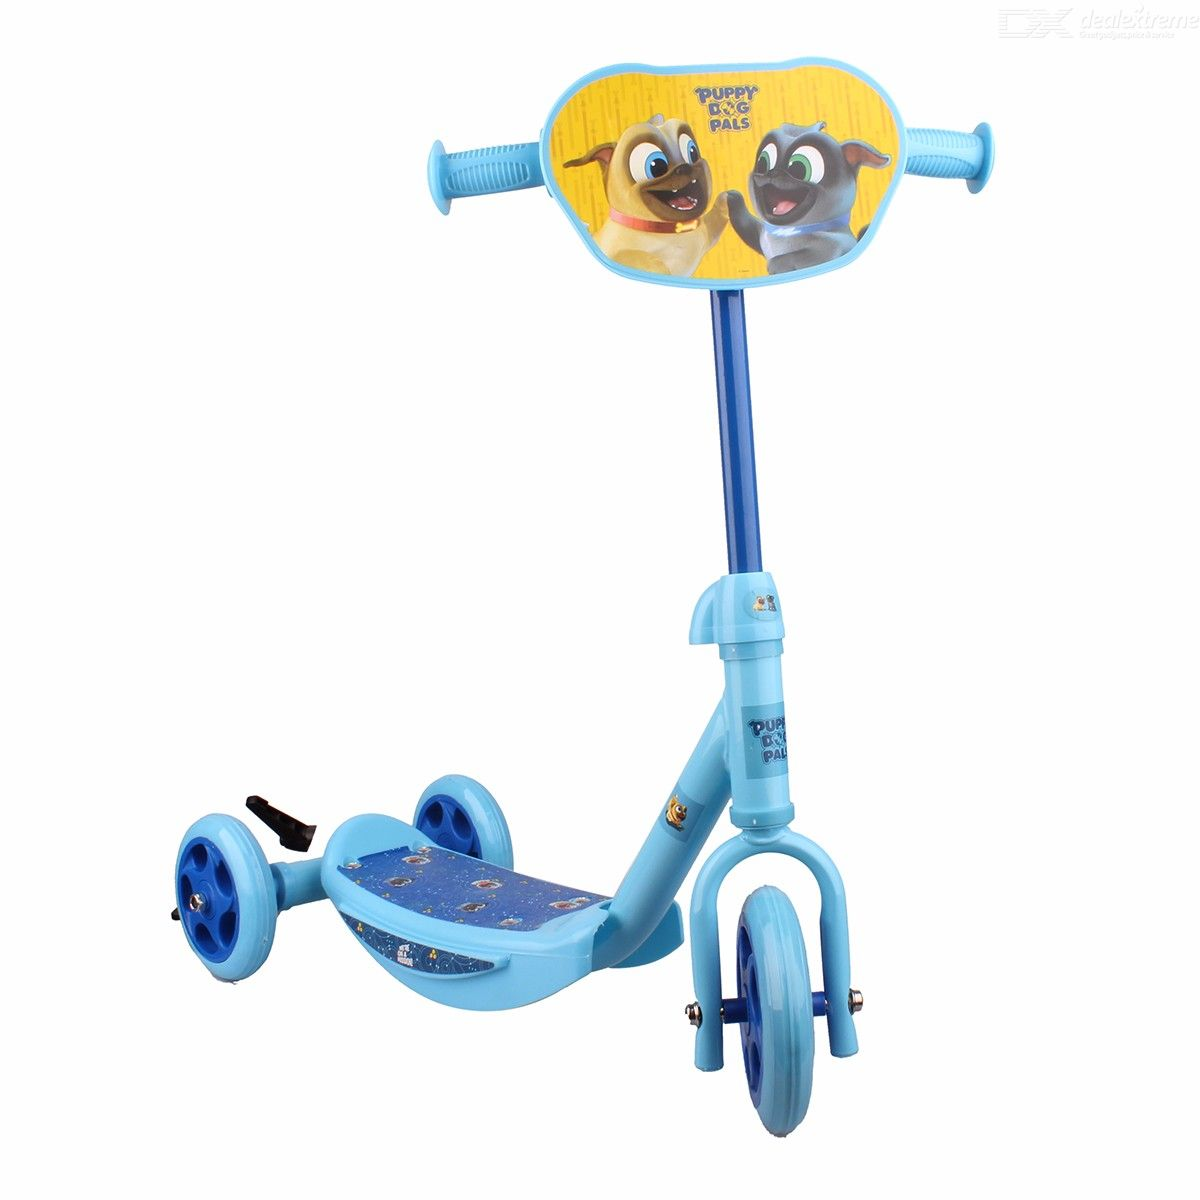 Disney-Puppy-Dog-Pals-Mini-Scooter-For-Kids-Childrens-Cartoon-Scooter-W1-PC-Assembling-Set